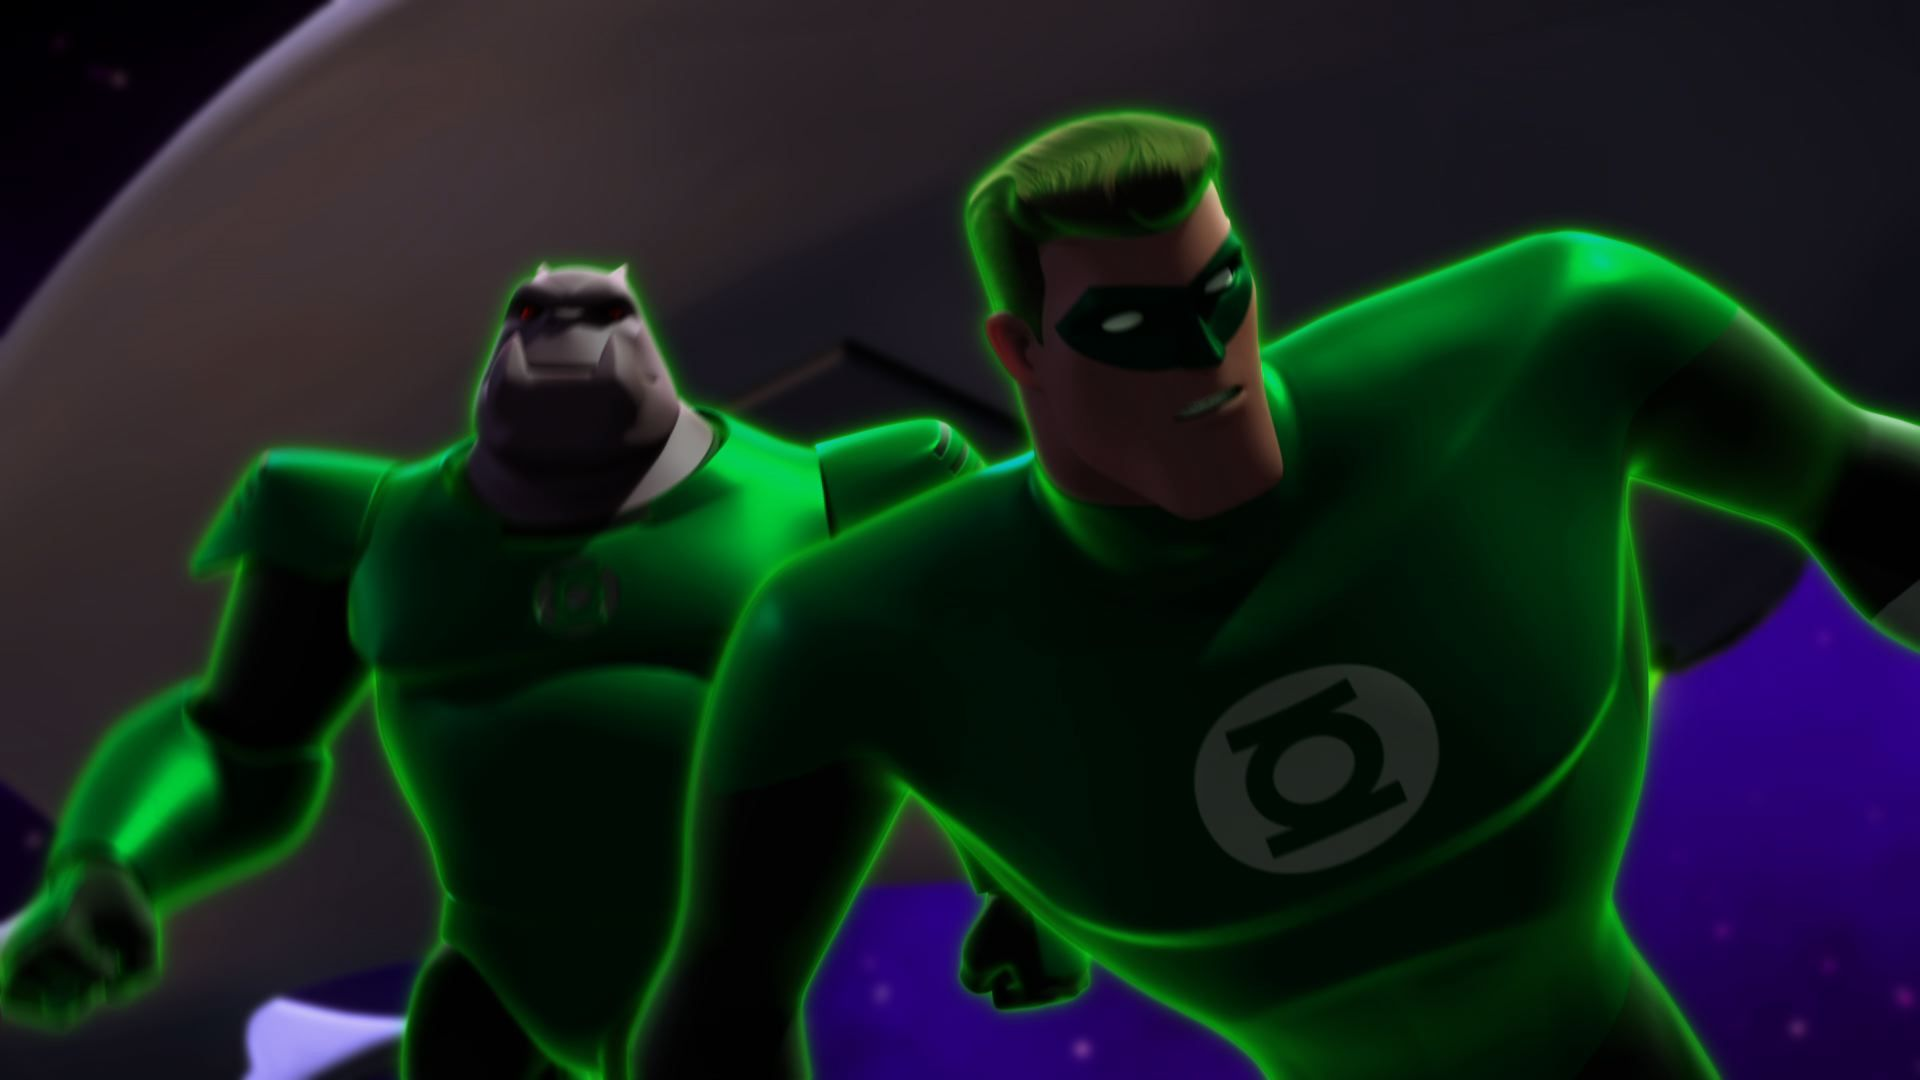 List of new green lantern animated series episodes for march 2012.